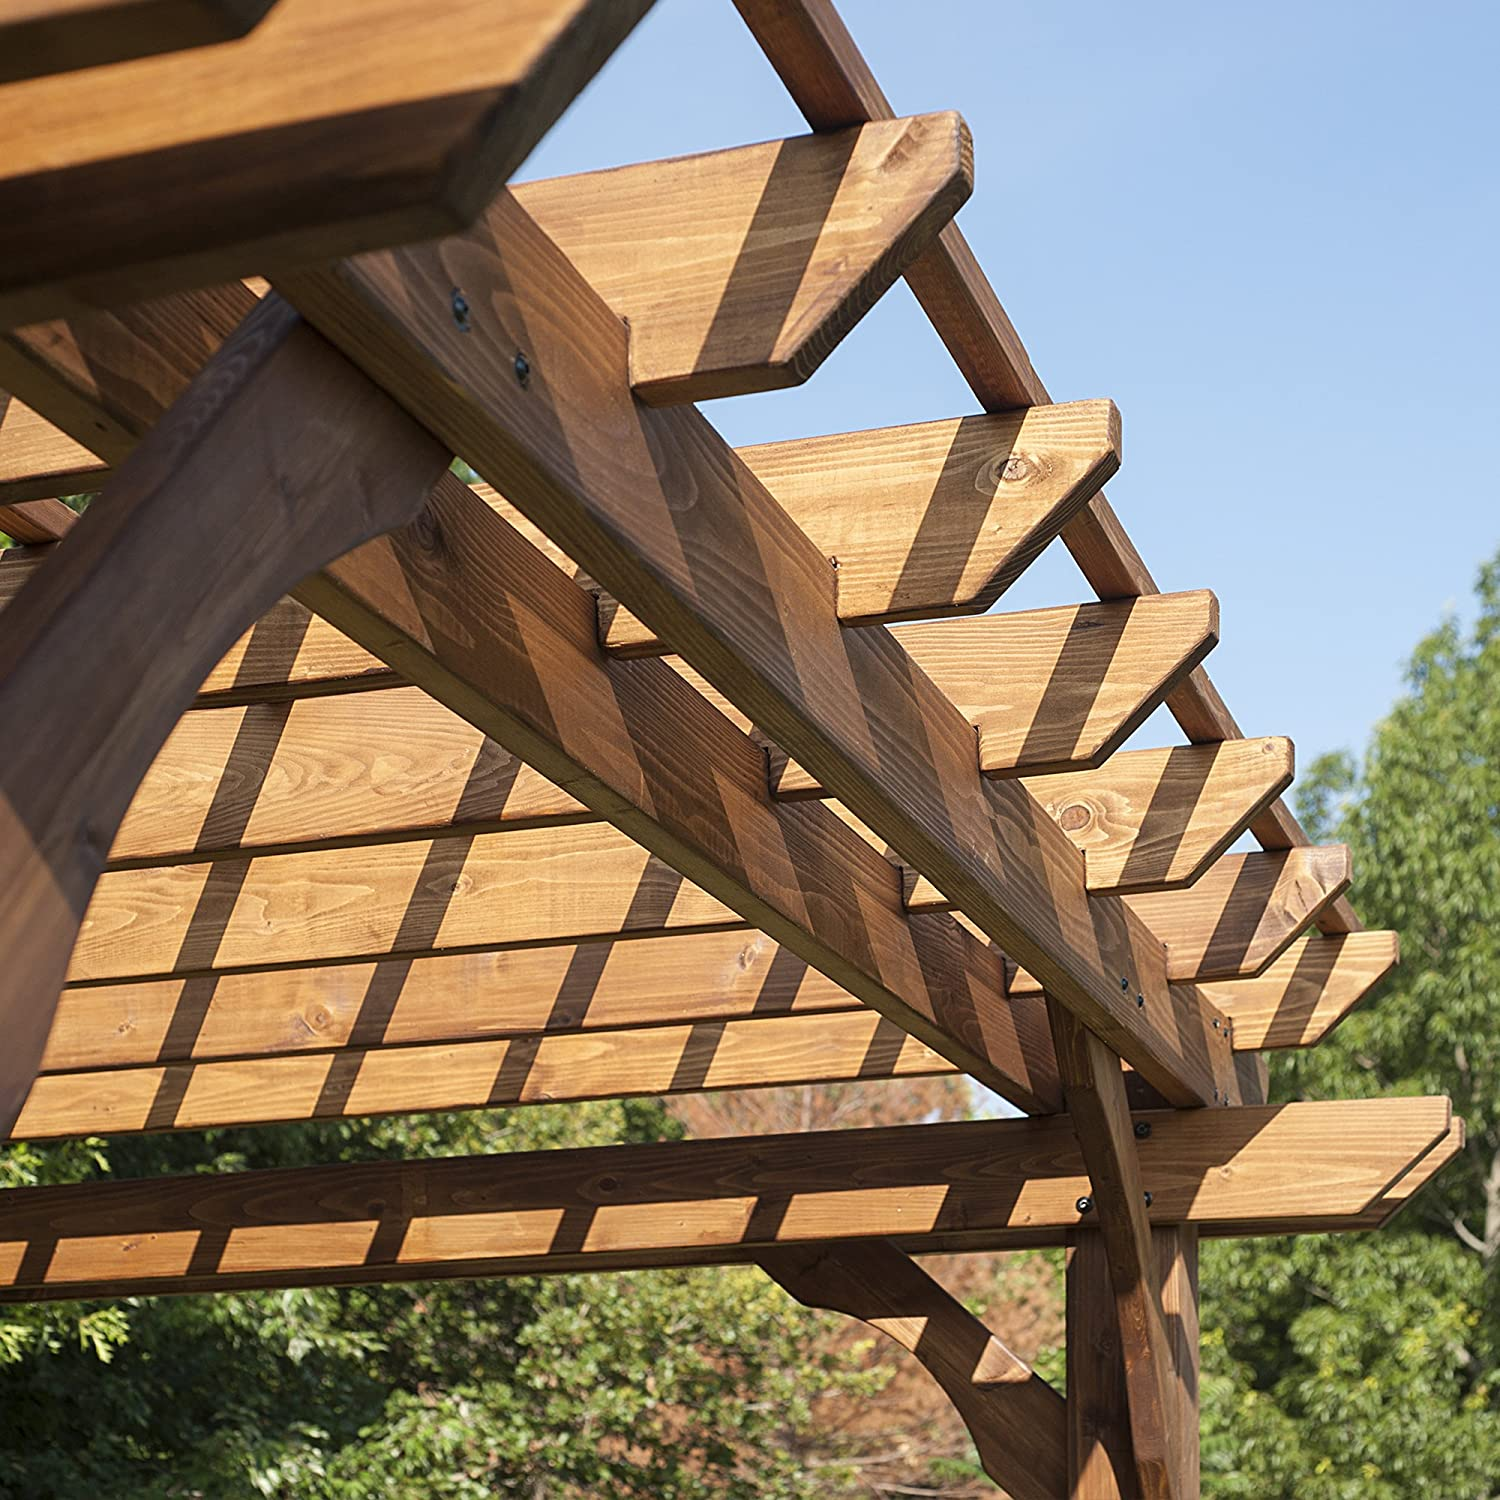 What Is A Pergola Used For?